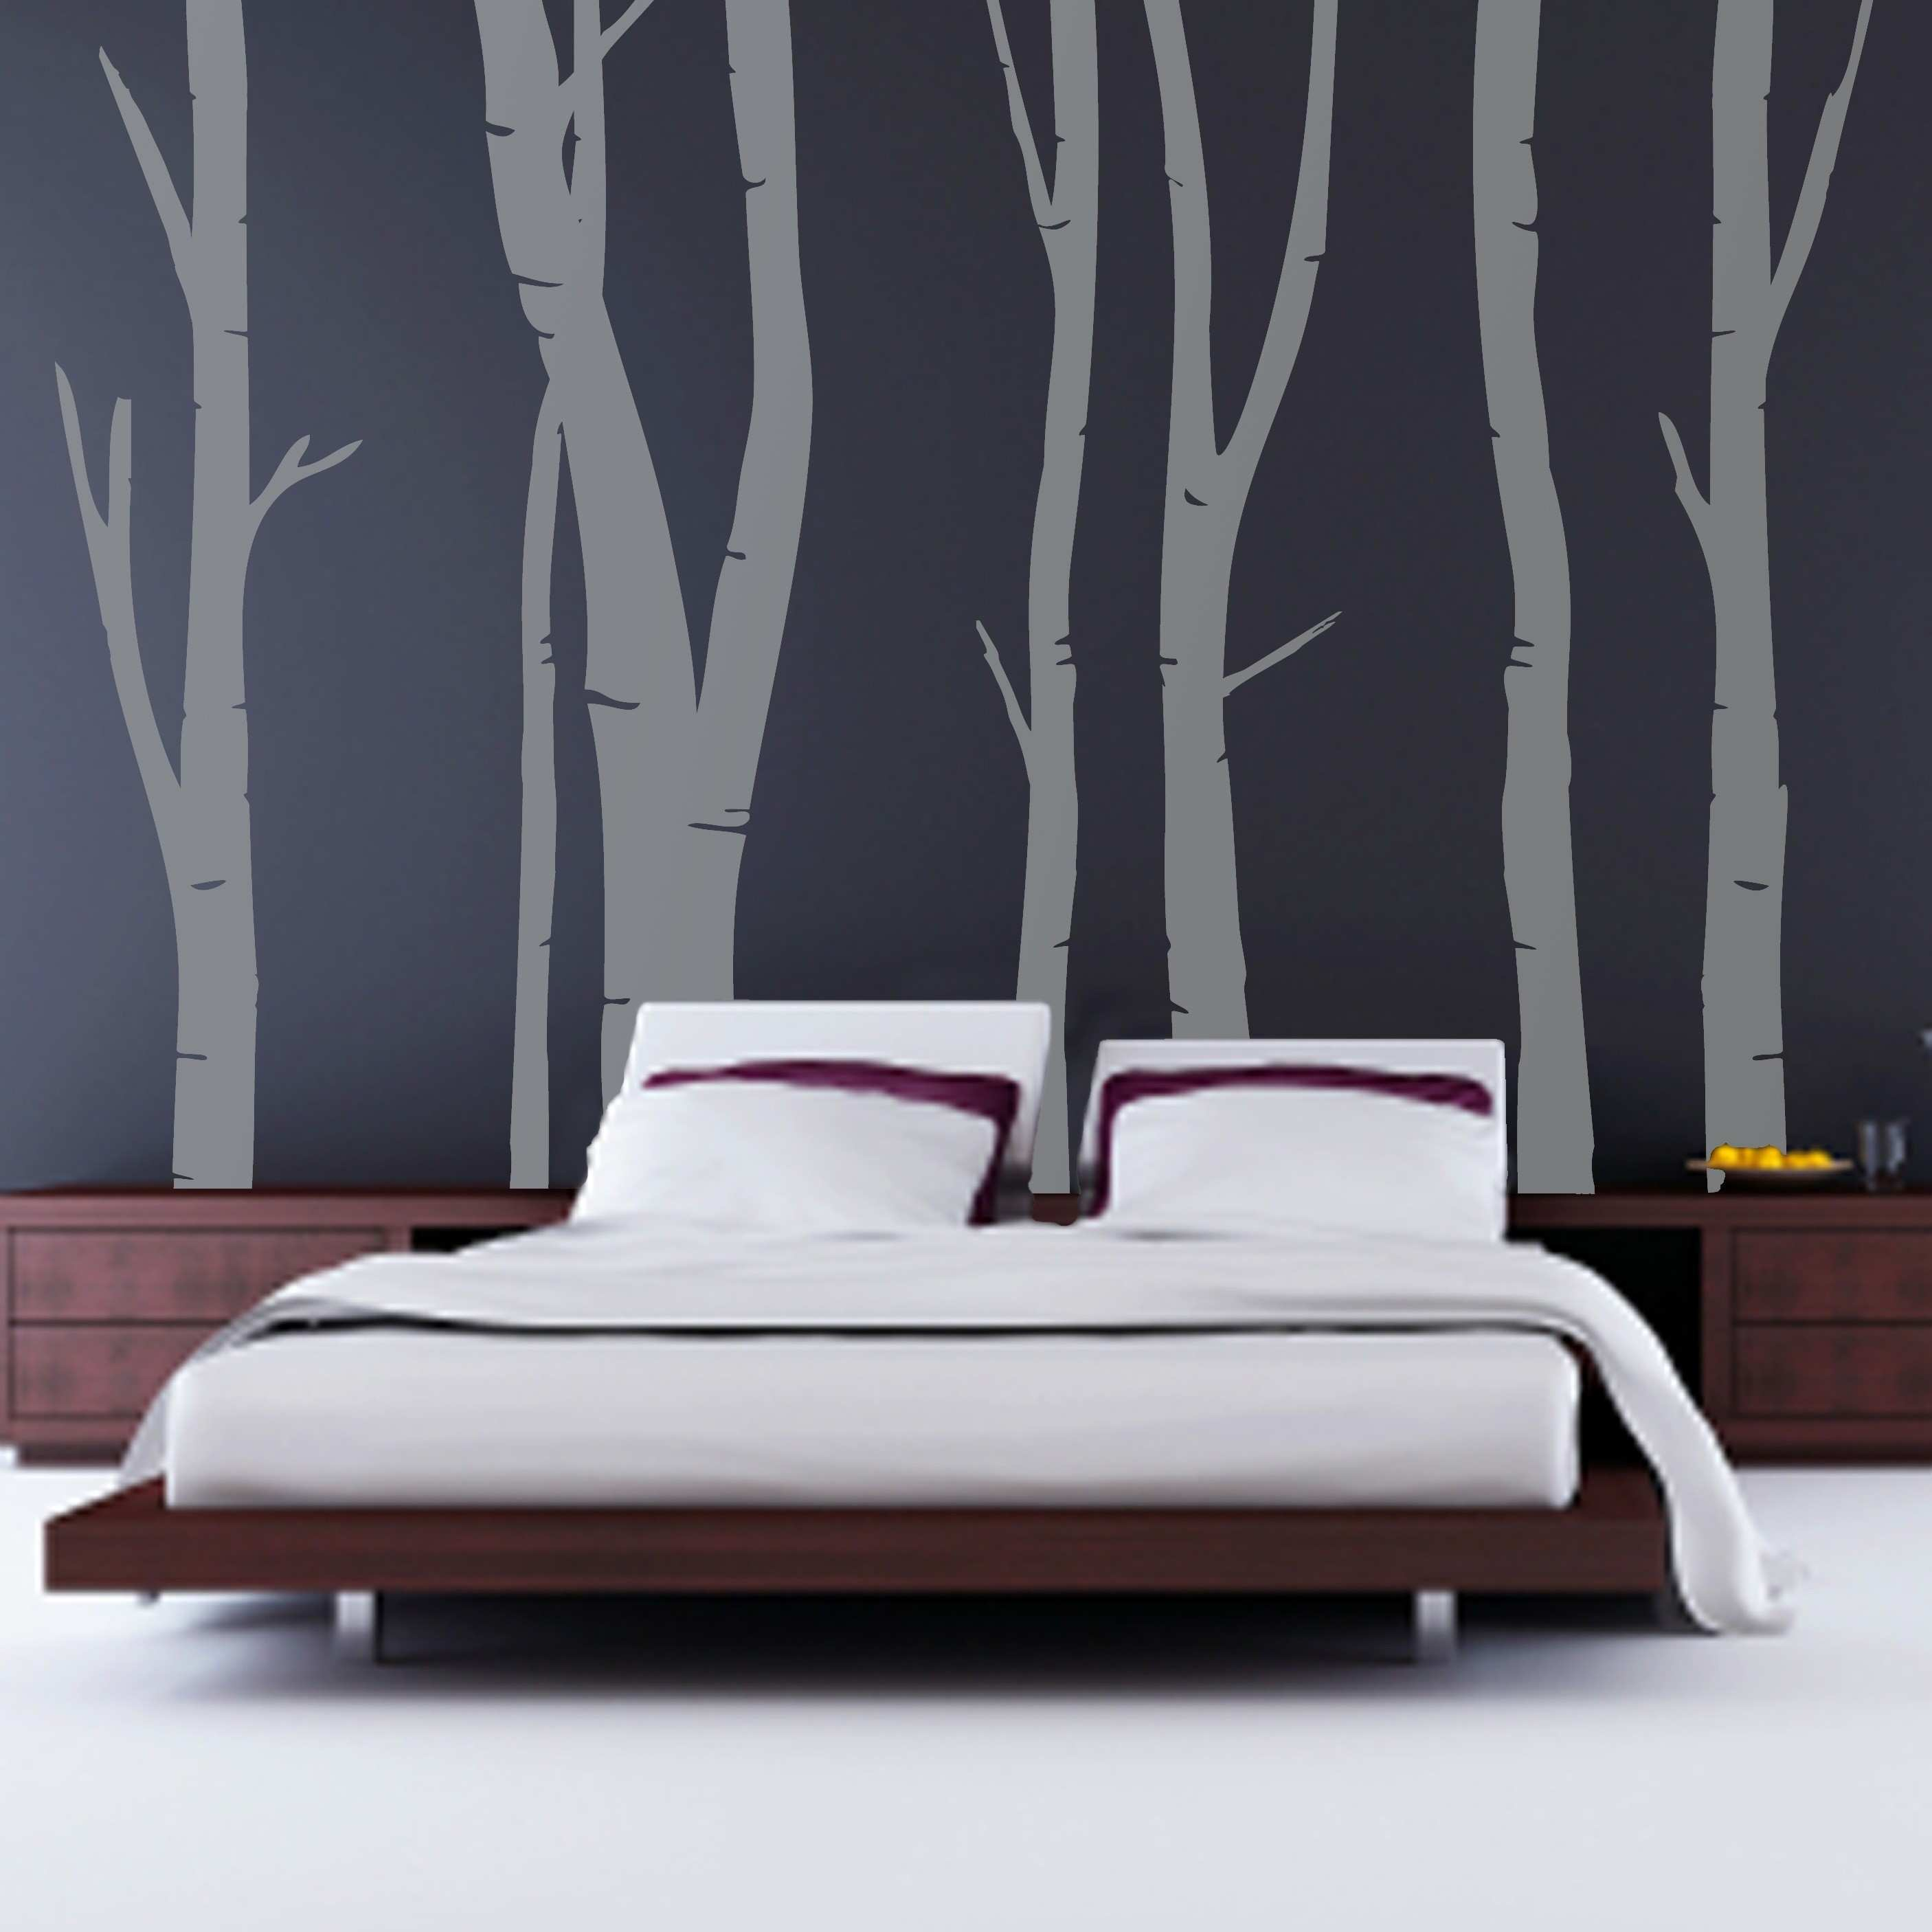 Awesome Wall Decals at Home Depot